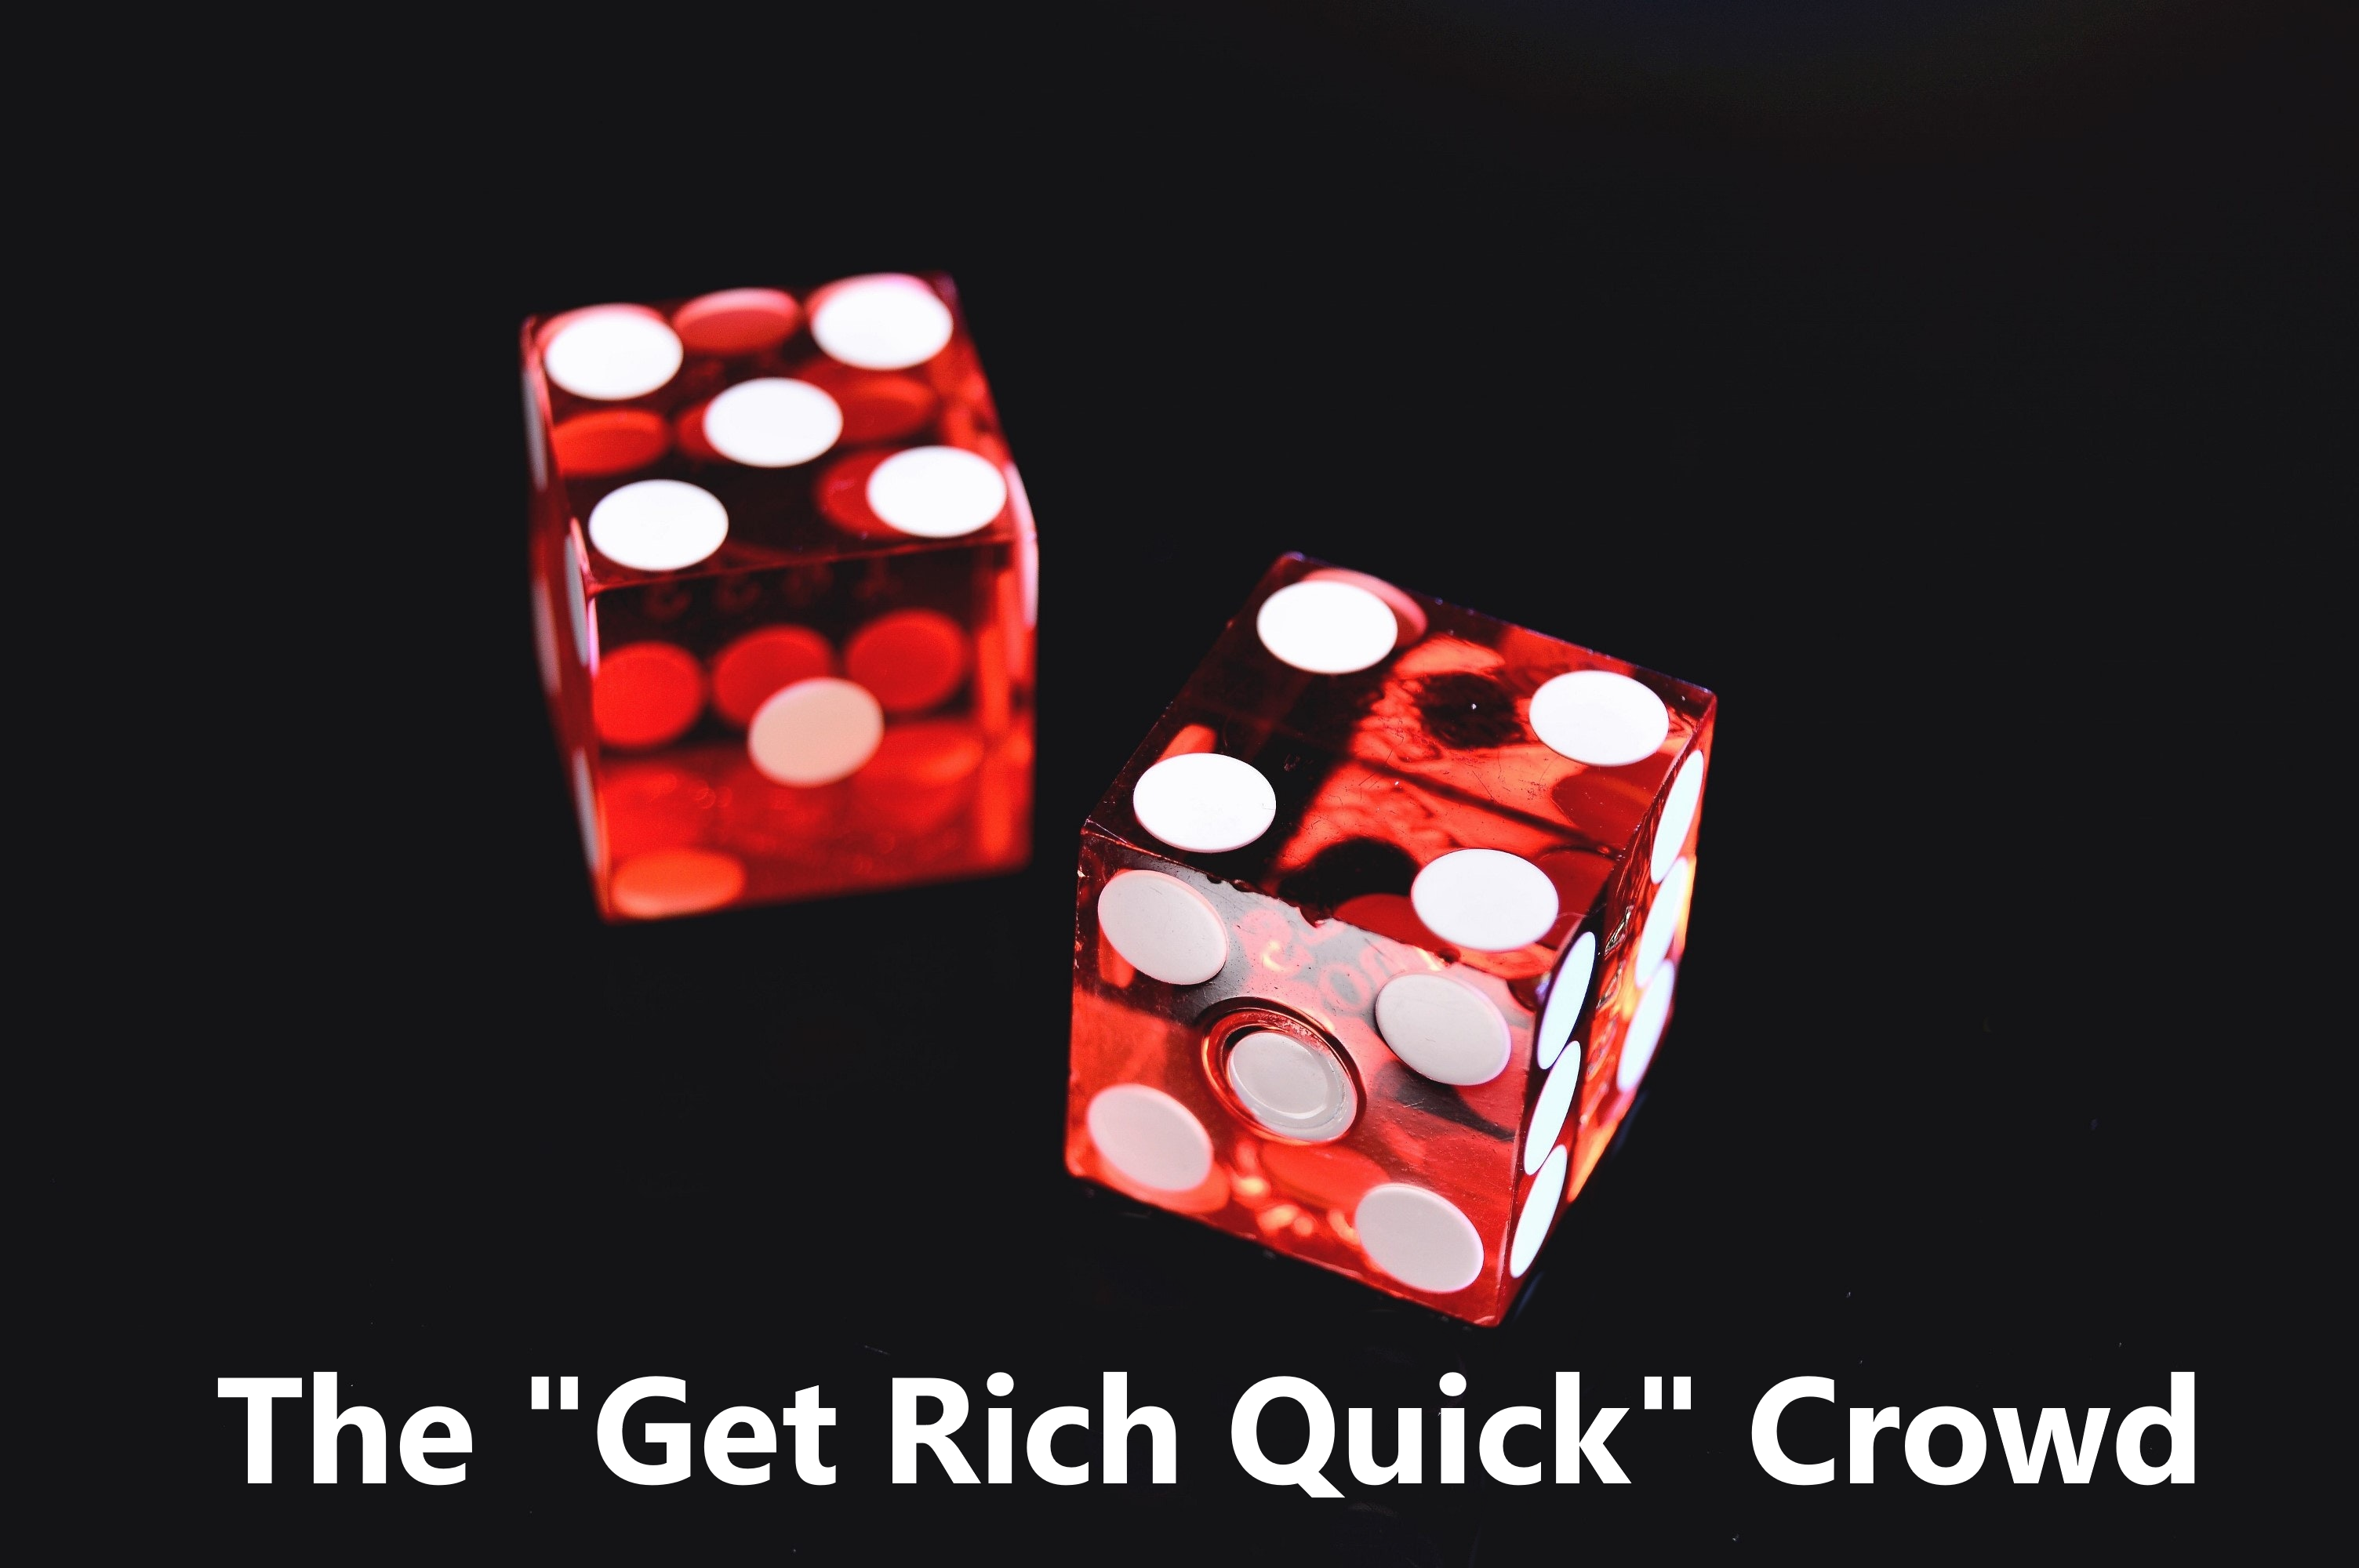 Successful online stock trading is not about rolling the dice, but requires education and risk-managent.